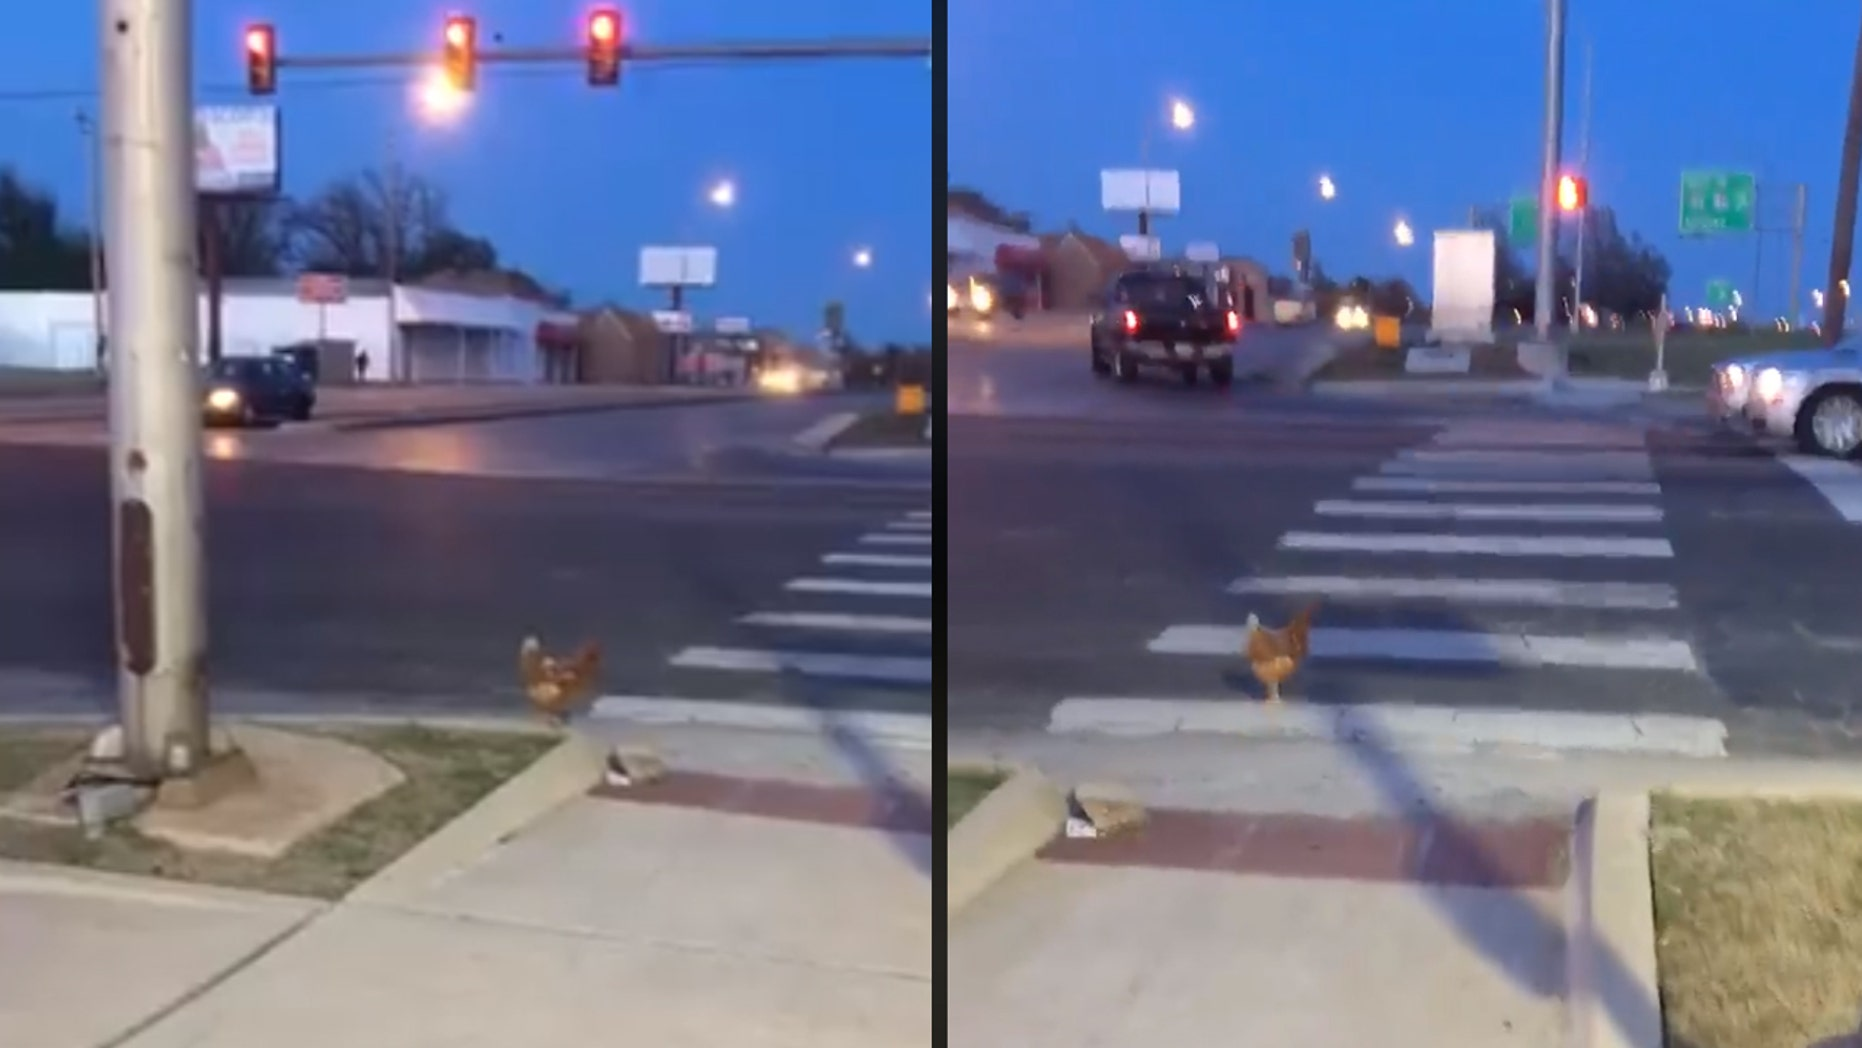 A chicken was caught on camera crossing the road in the crosswalk.